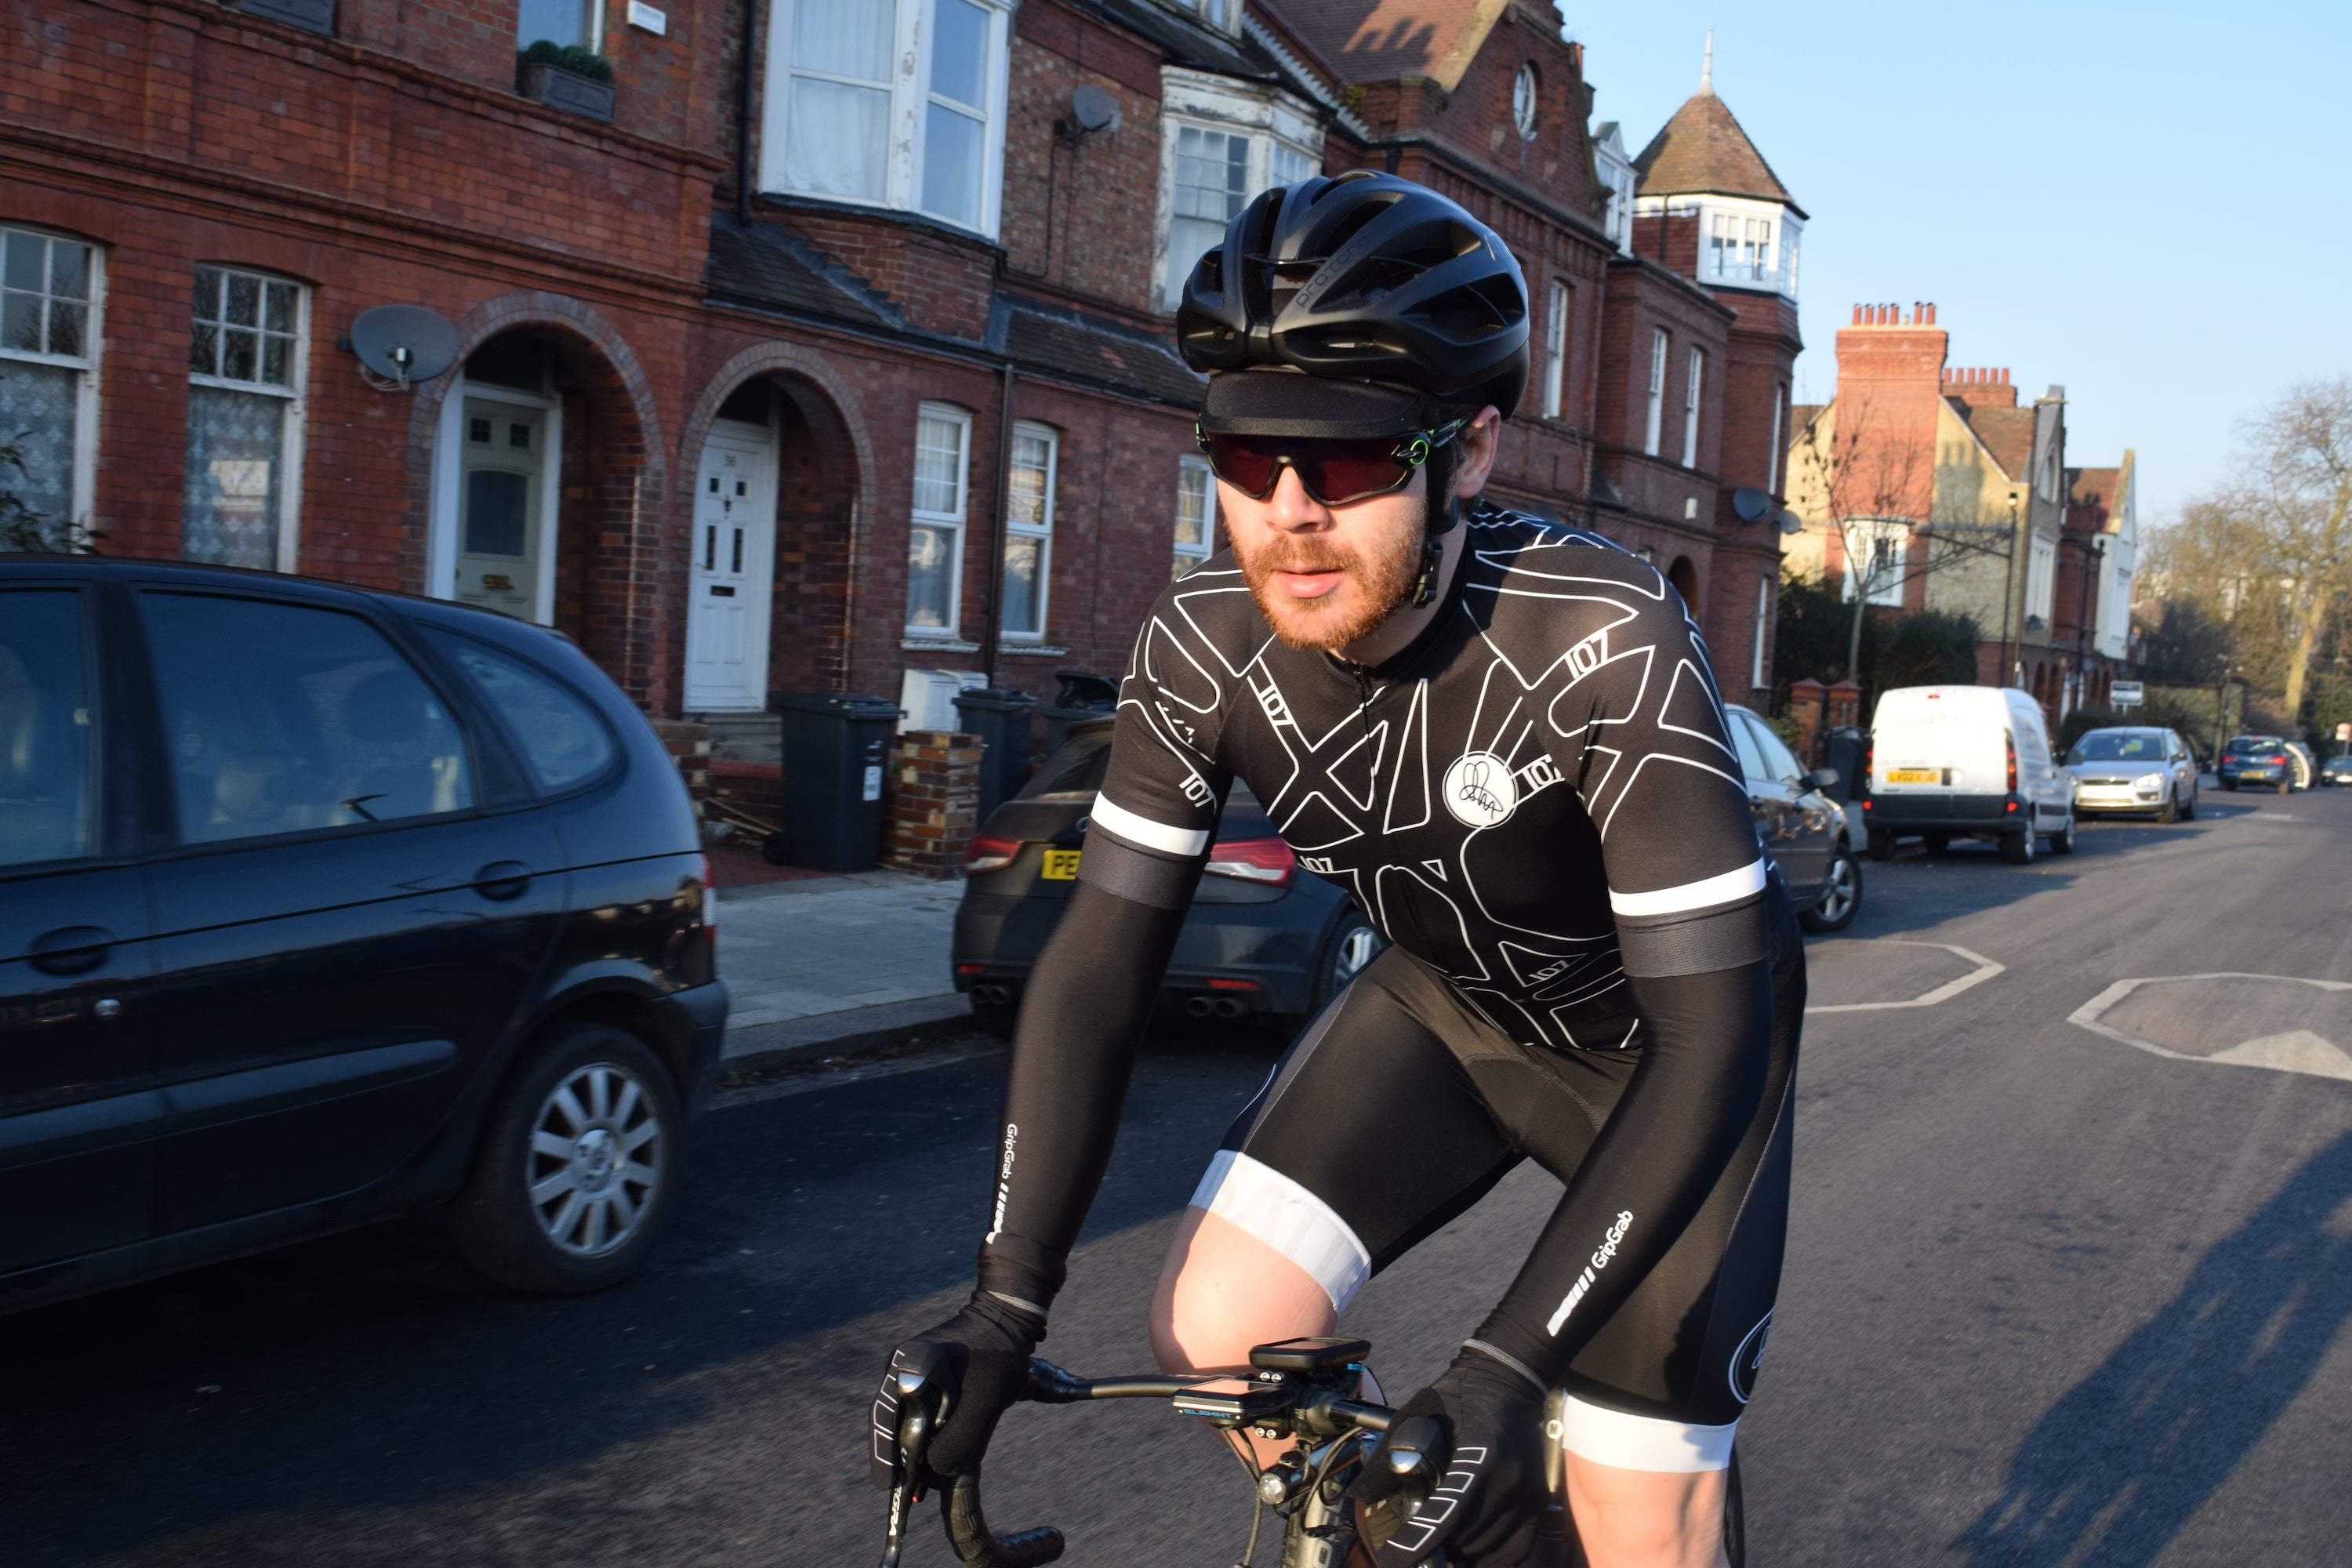 7e56fc4e8 Endurane Cyclist Chris Hall on his 107 for 107 challenge in special edition  jersey and dark